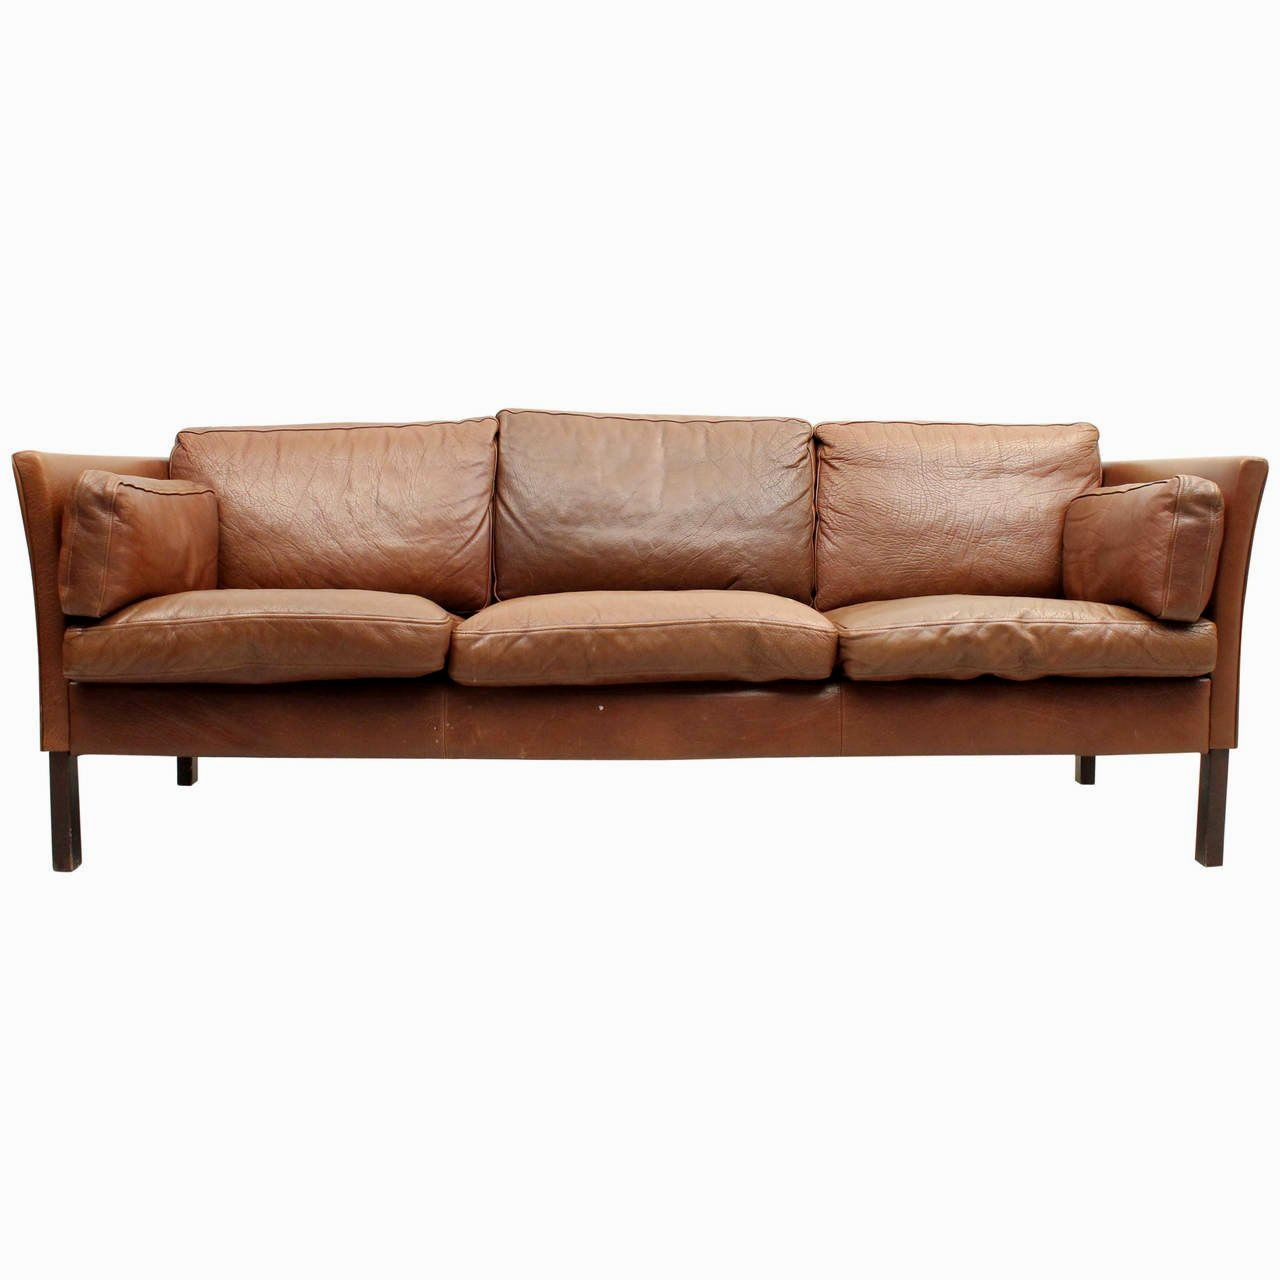 lovely mid century leather sofa decoration-Latest Mid Century Leather sofa Gallery